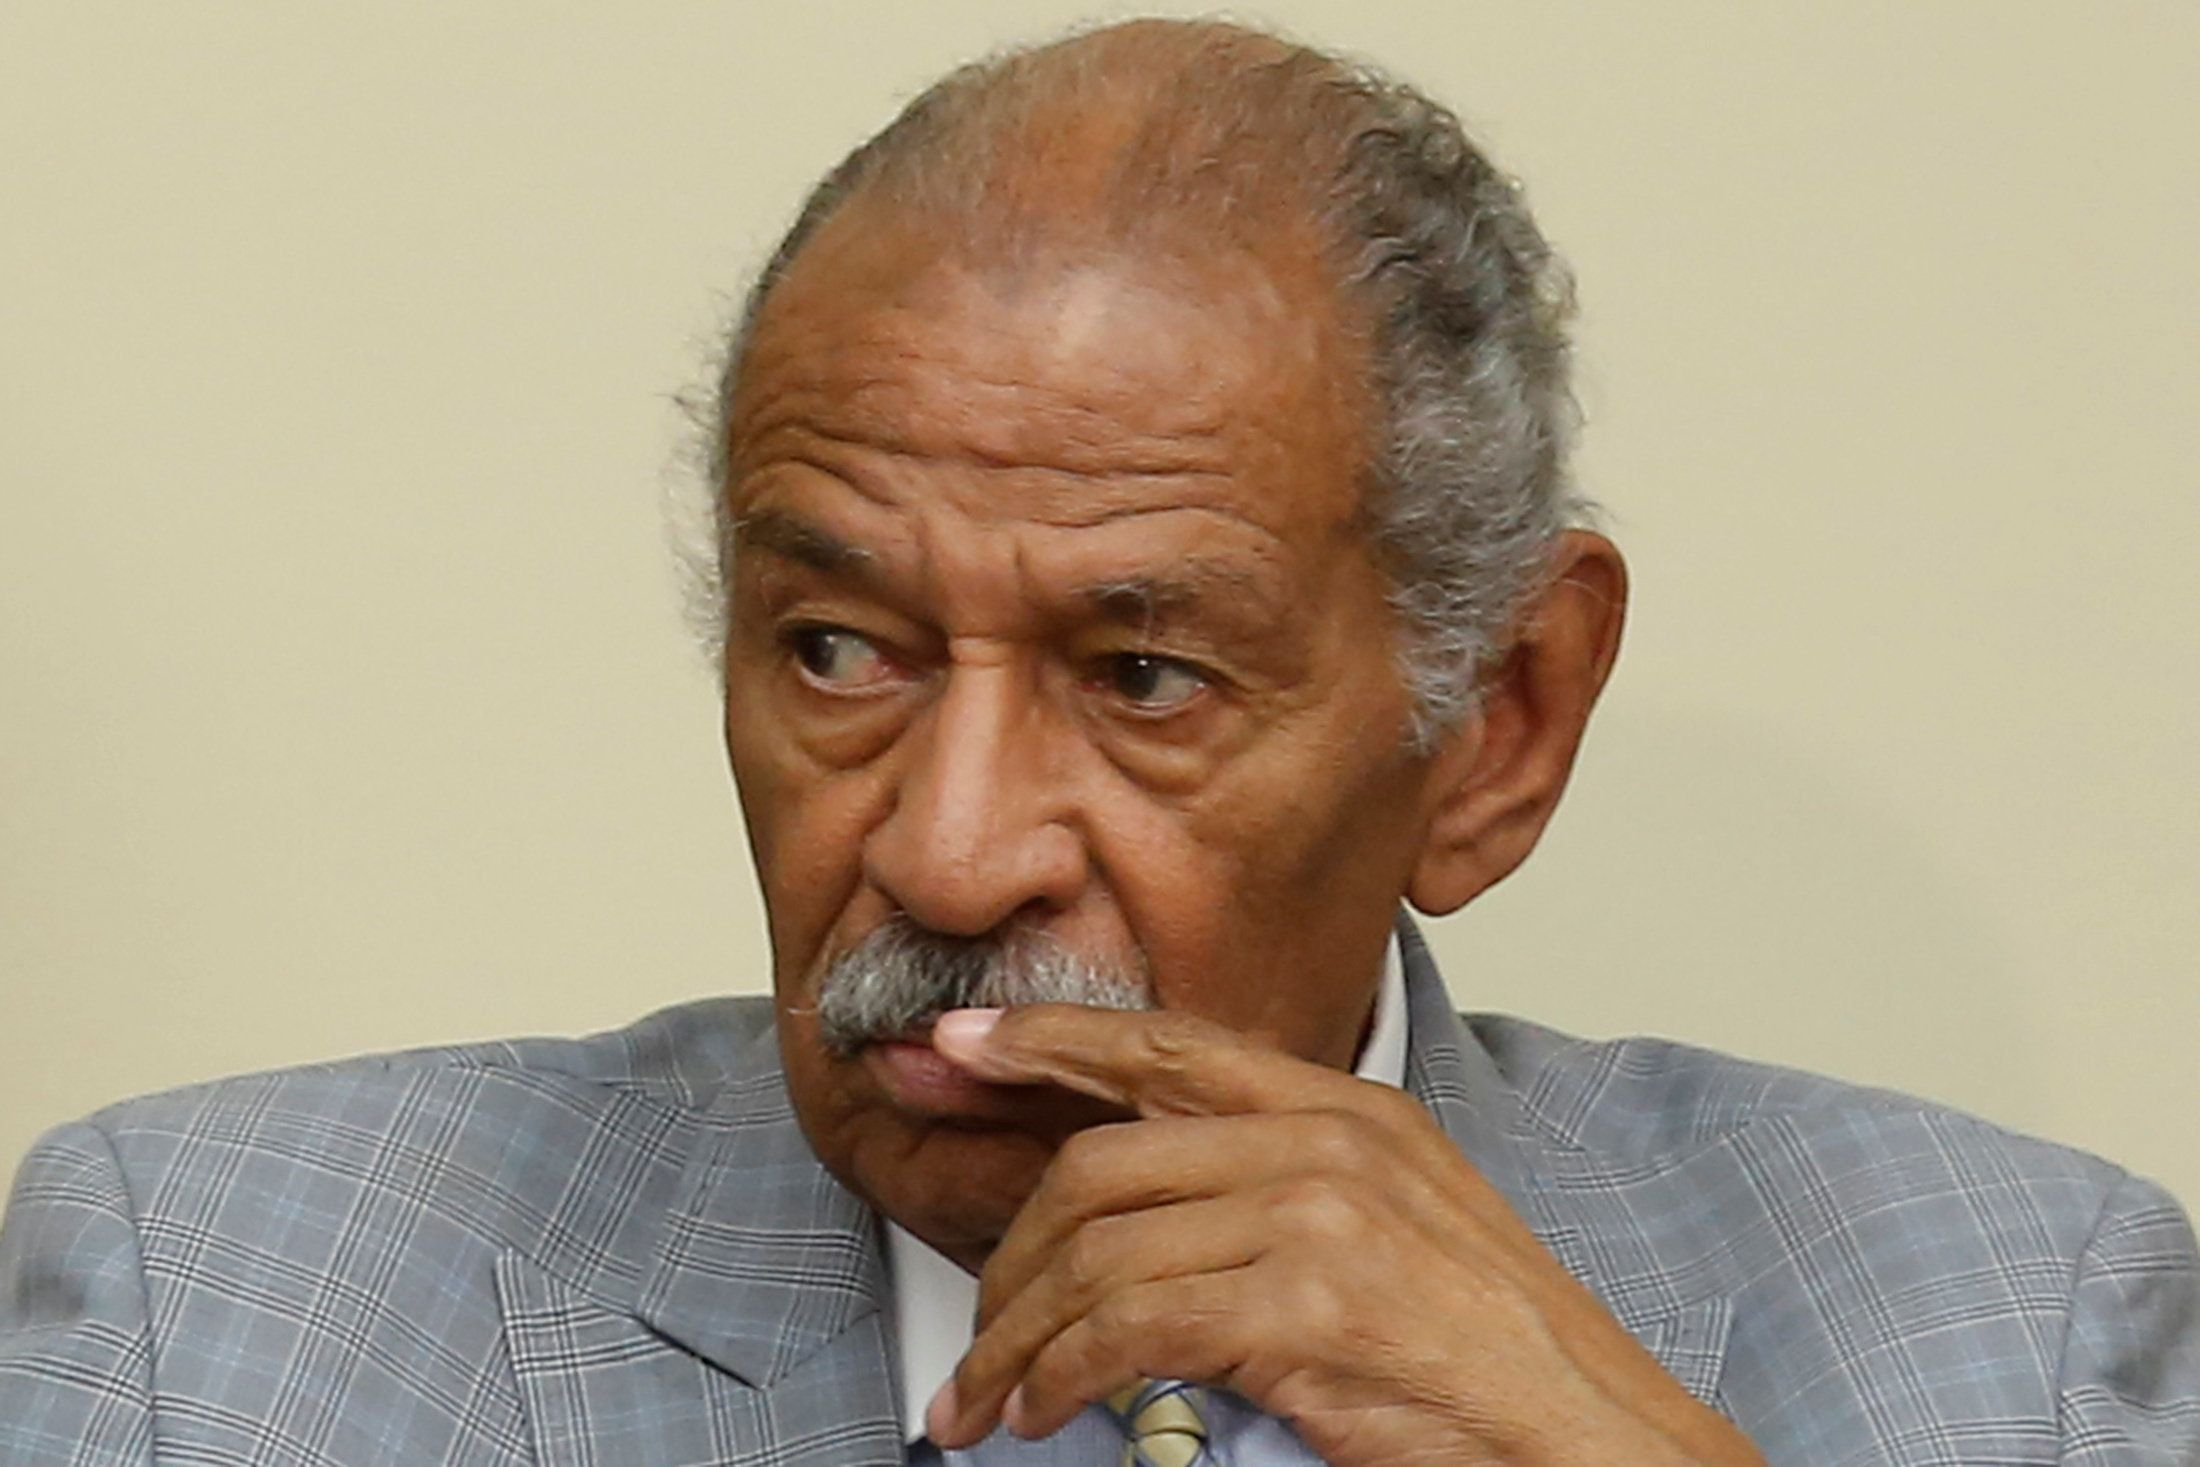 Rep. John Conyers hospitalized in Detroit area